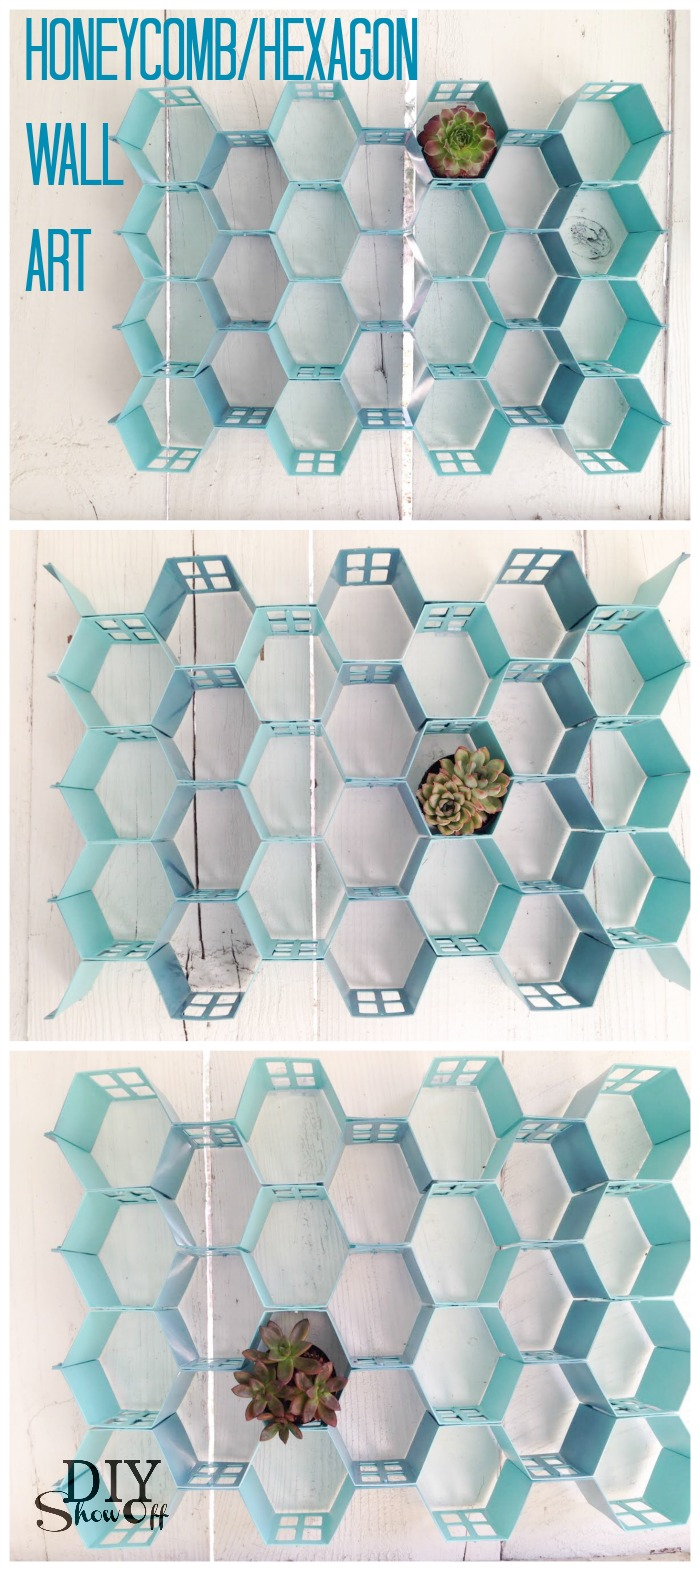 DIY honeycomb hexagon wall art at diyshowoff.com